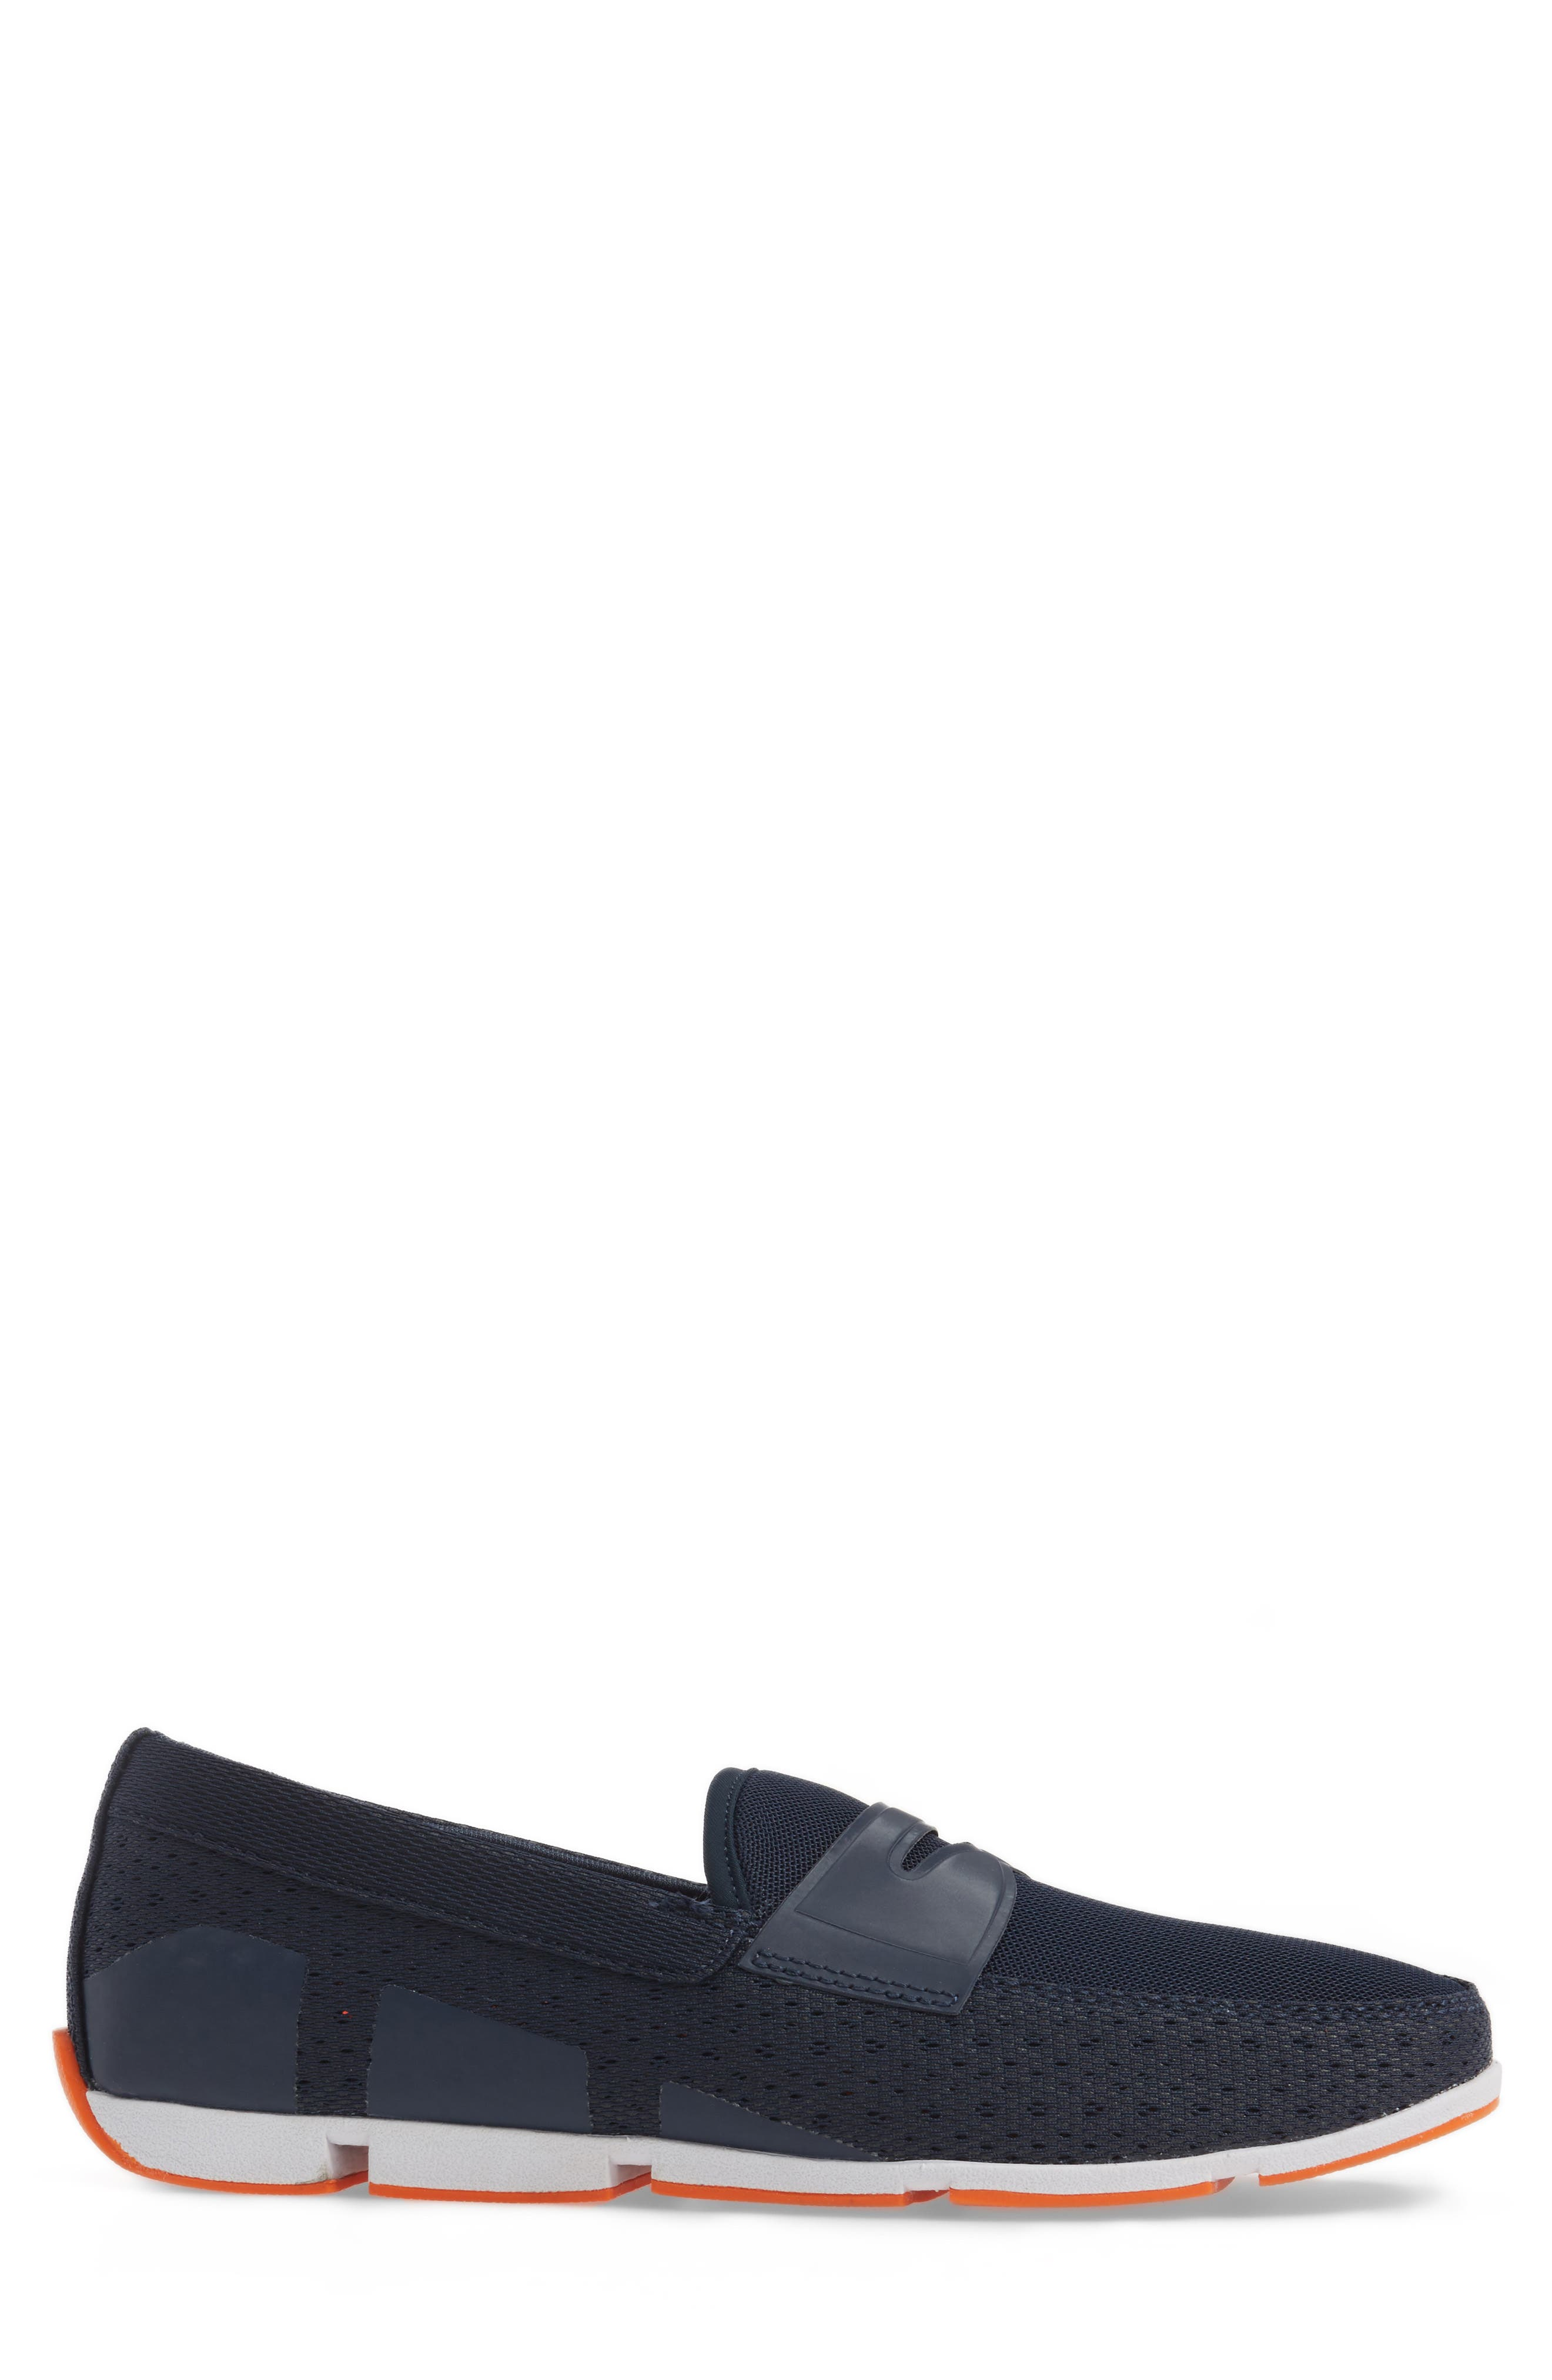 Breeze Penny Loafer,                             Alternate thumbnail 15, color,